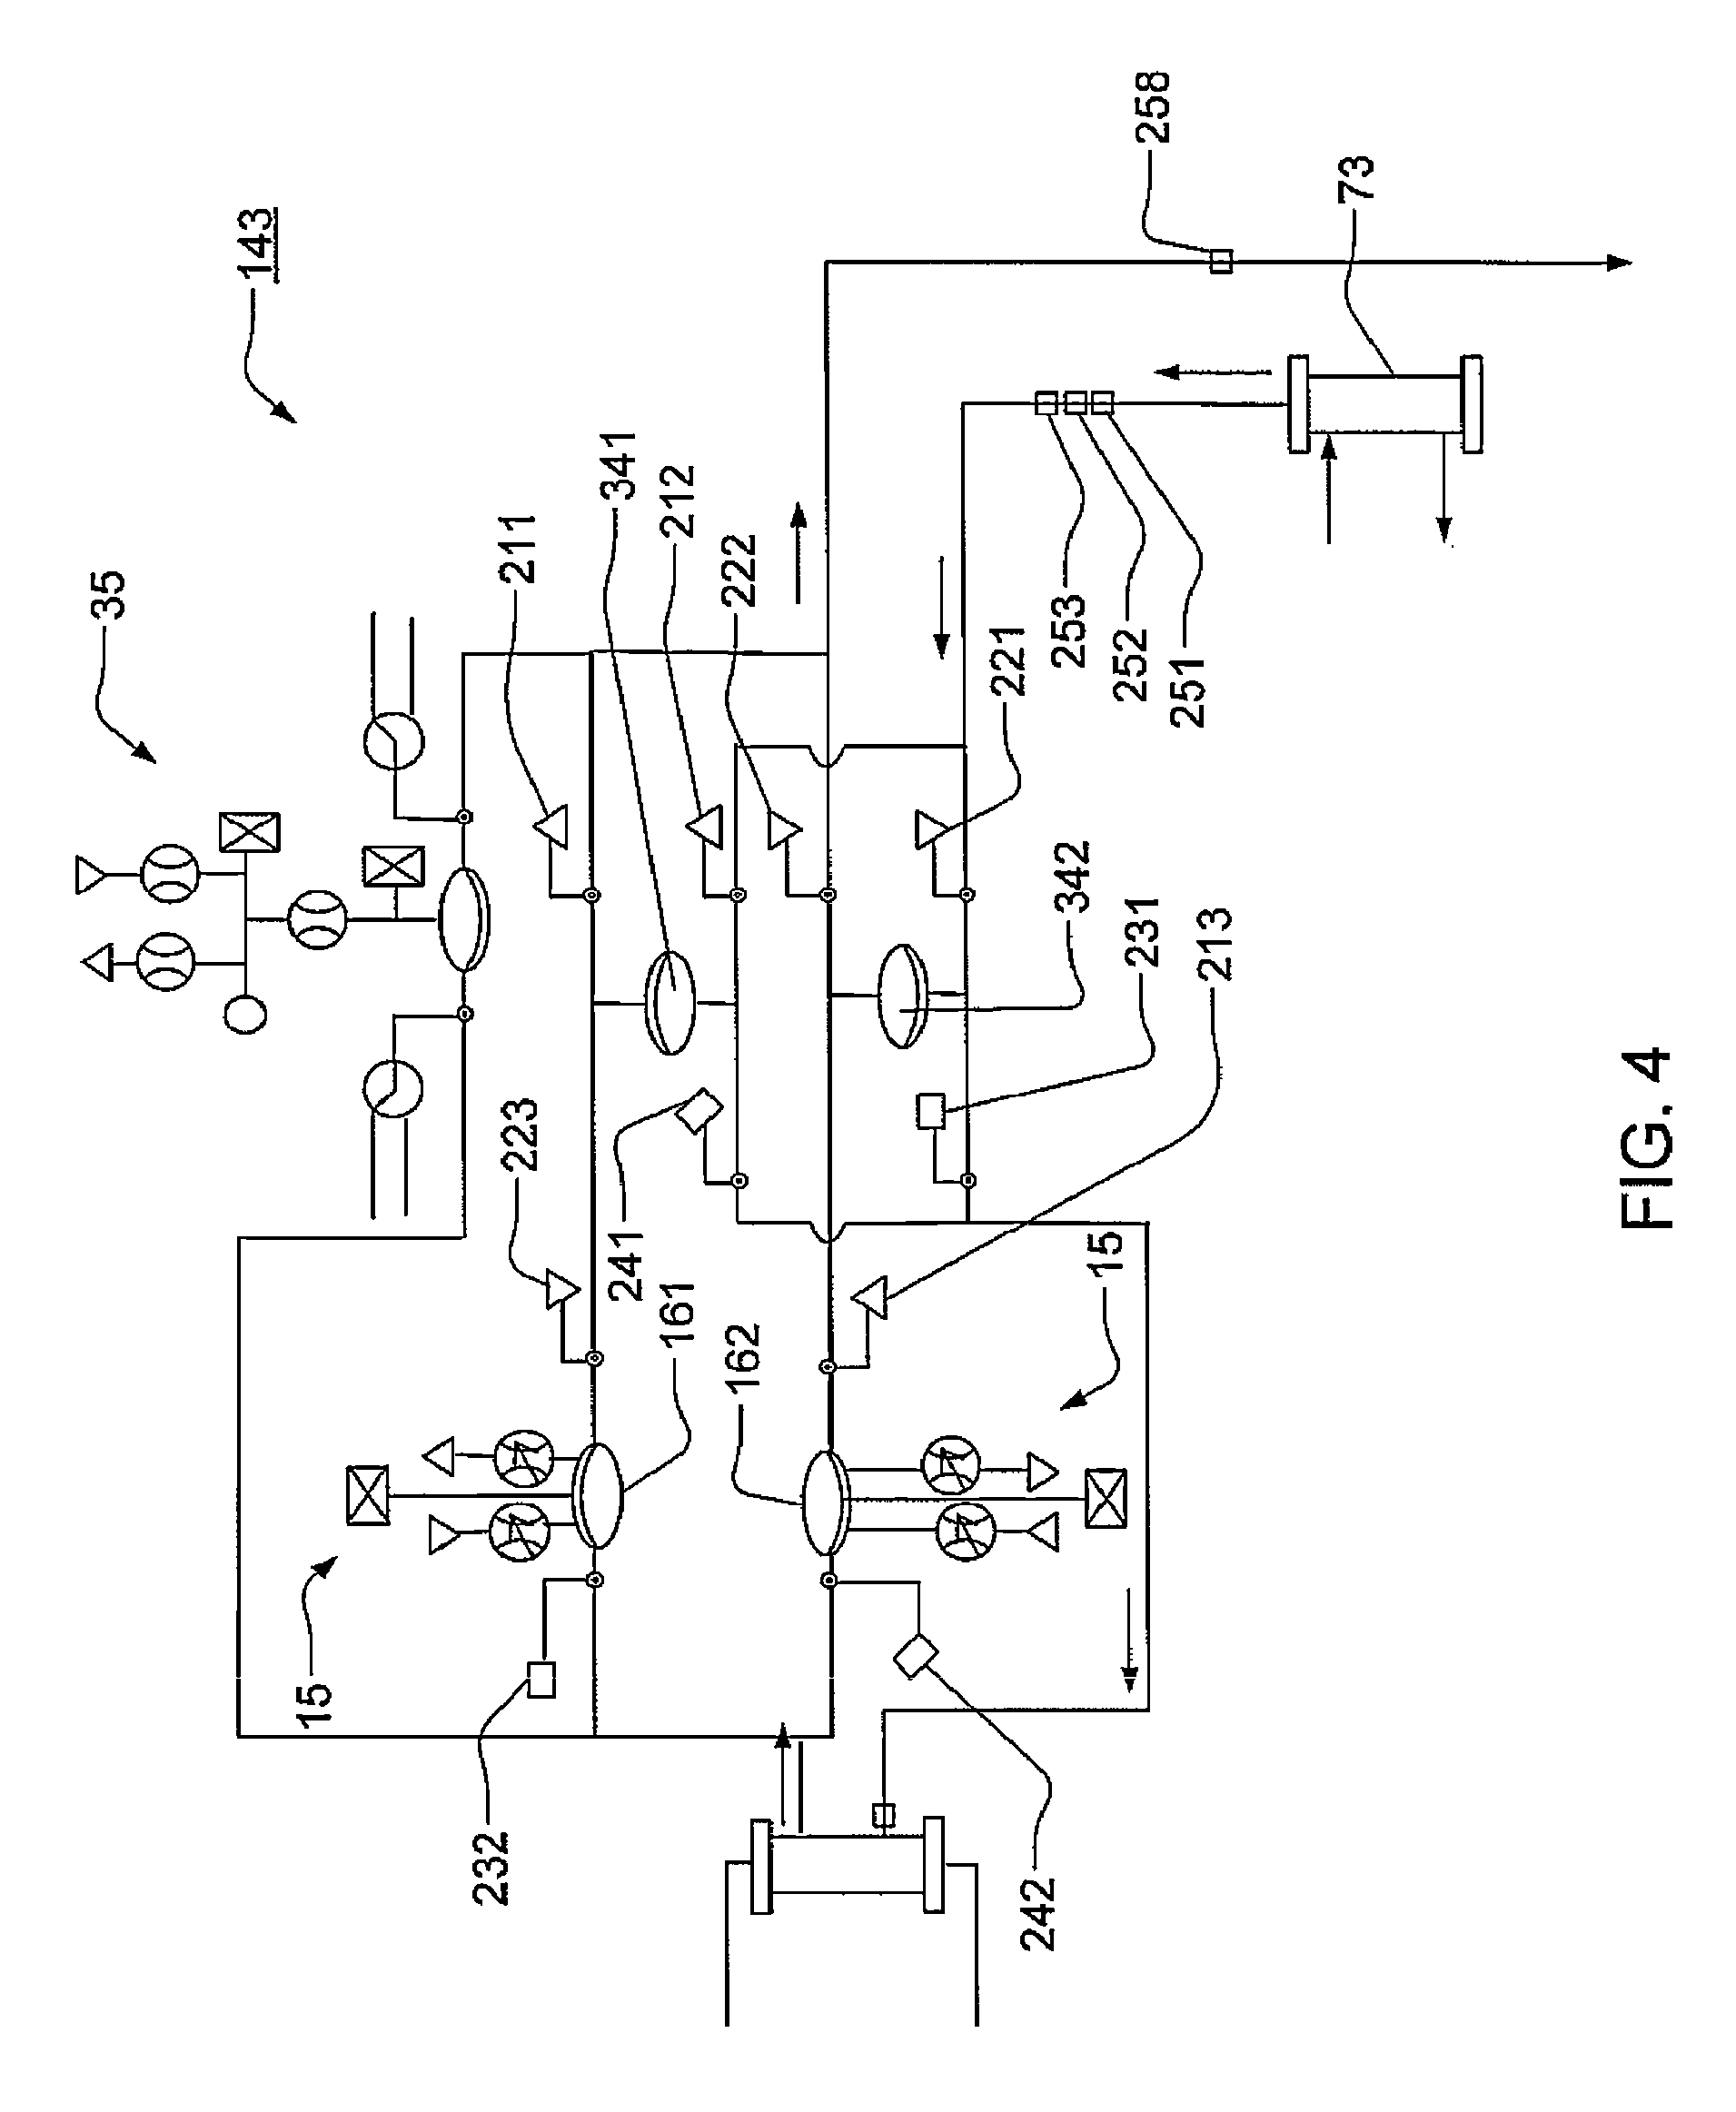 r pod 179 wiring diagram best wiring library Machinie Welding to Turn in Microwave patent us 9 539 379 b2 forest river r pod 179 r pod 179 wiring diagram